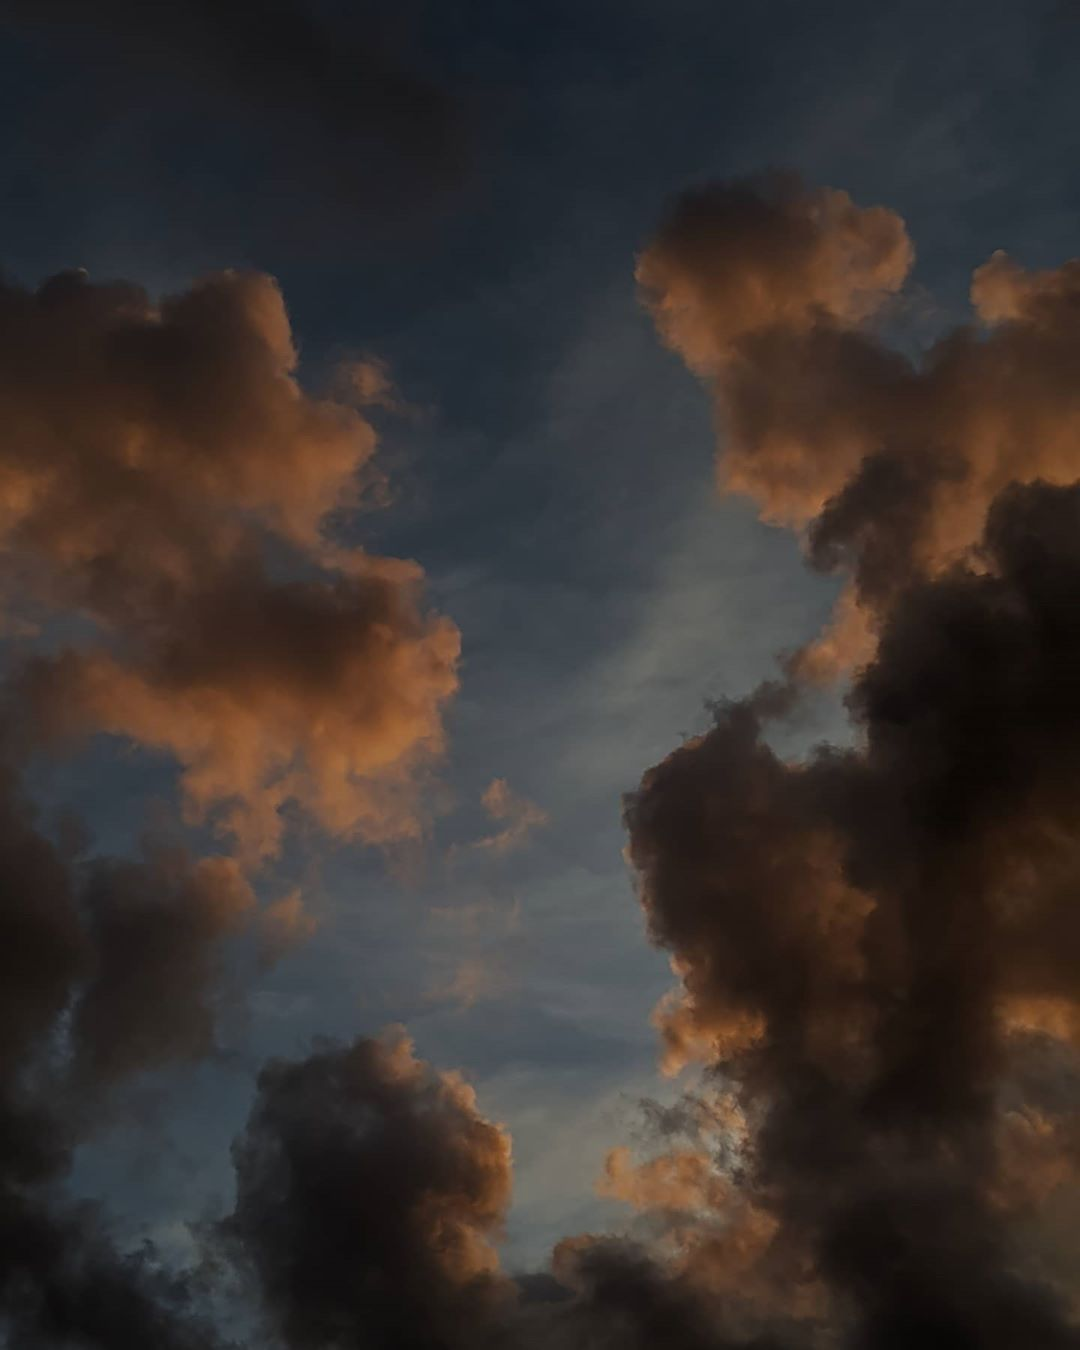 You Re Still Prettier Though Photography Photooftheday Clouds Sky Sunset Pink Pinkclouds Aesthetic Wal Nature Photography Pink Clouds Pink Sky Pink clouds sunset dusk coast rocks